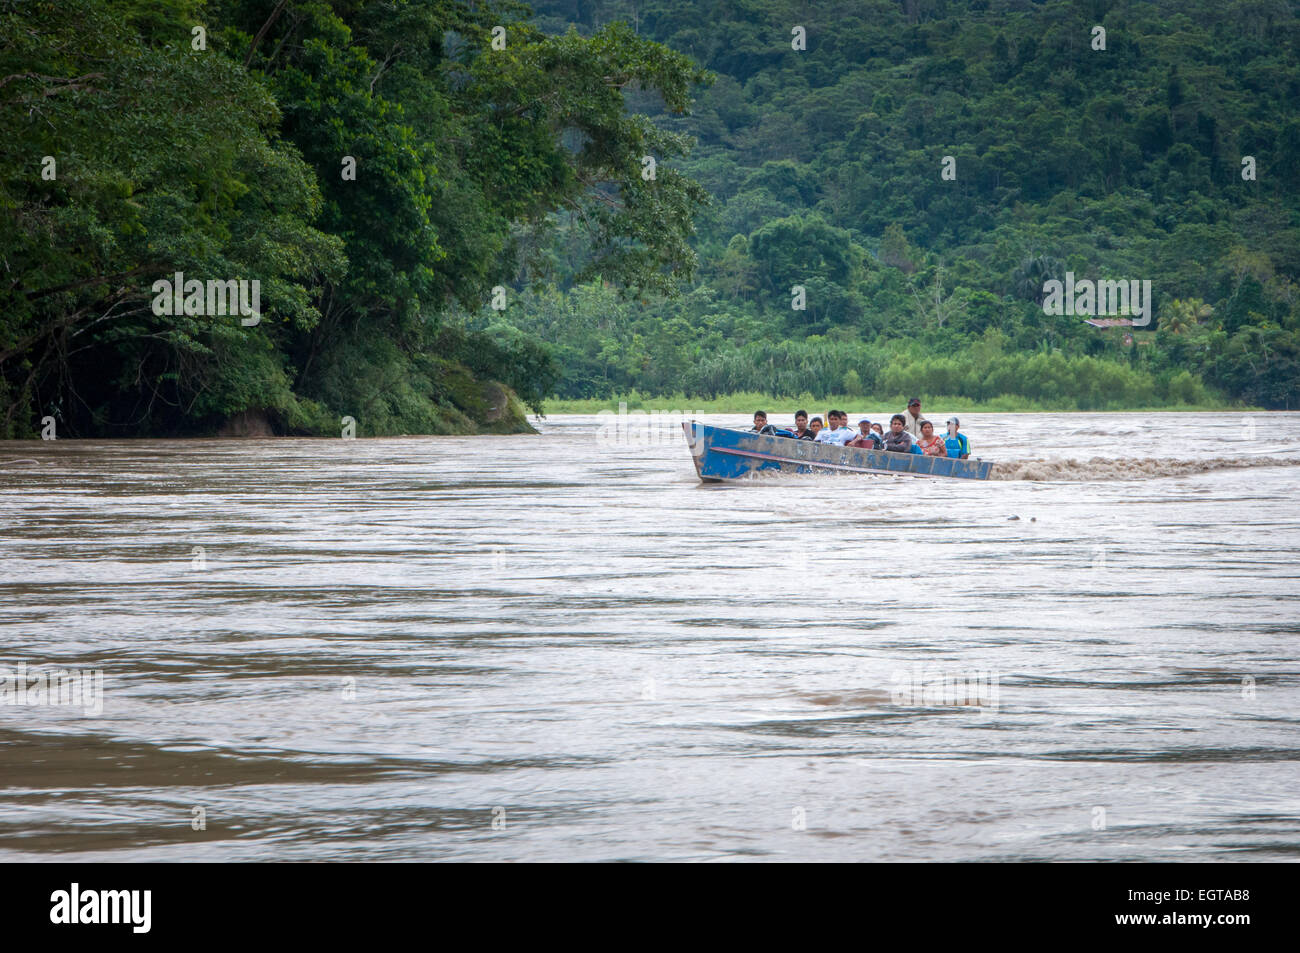 Local People Travelling by Boat through Jungle on the Maranon River in Amazonas Region of Peru - Stock Image